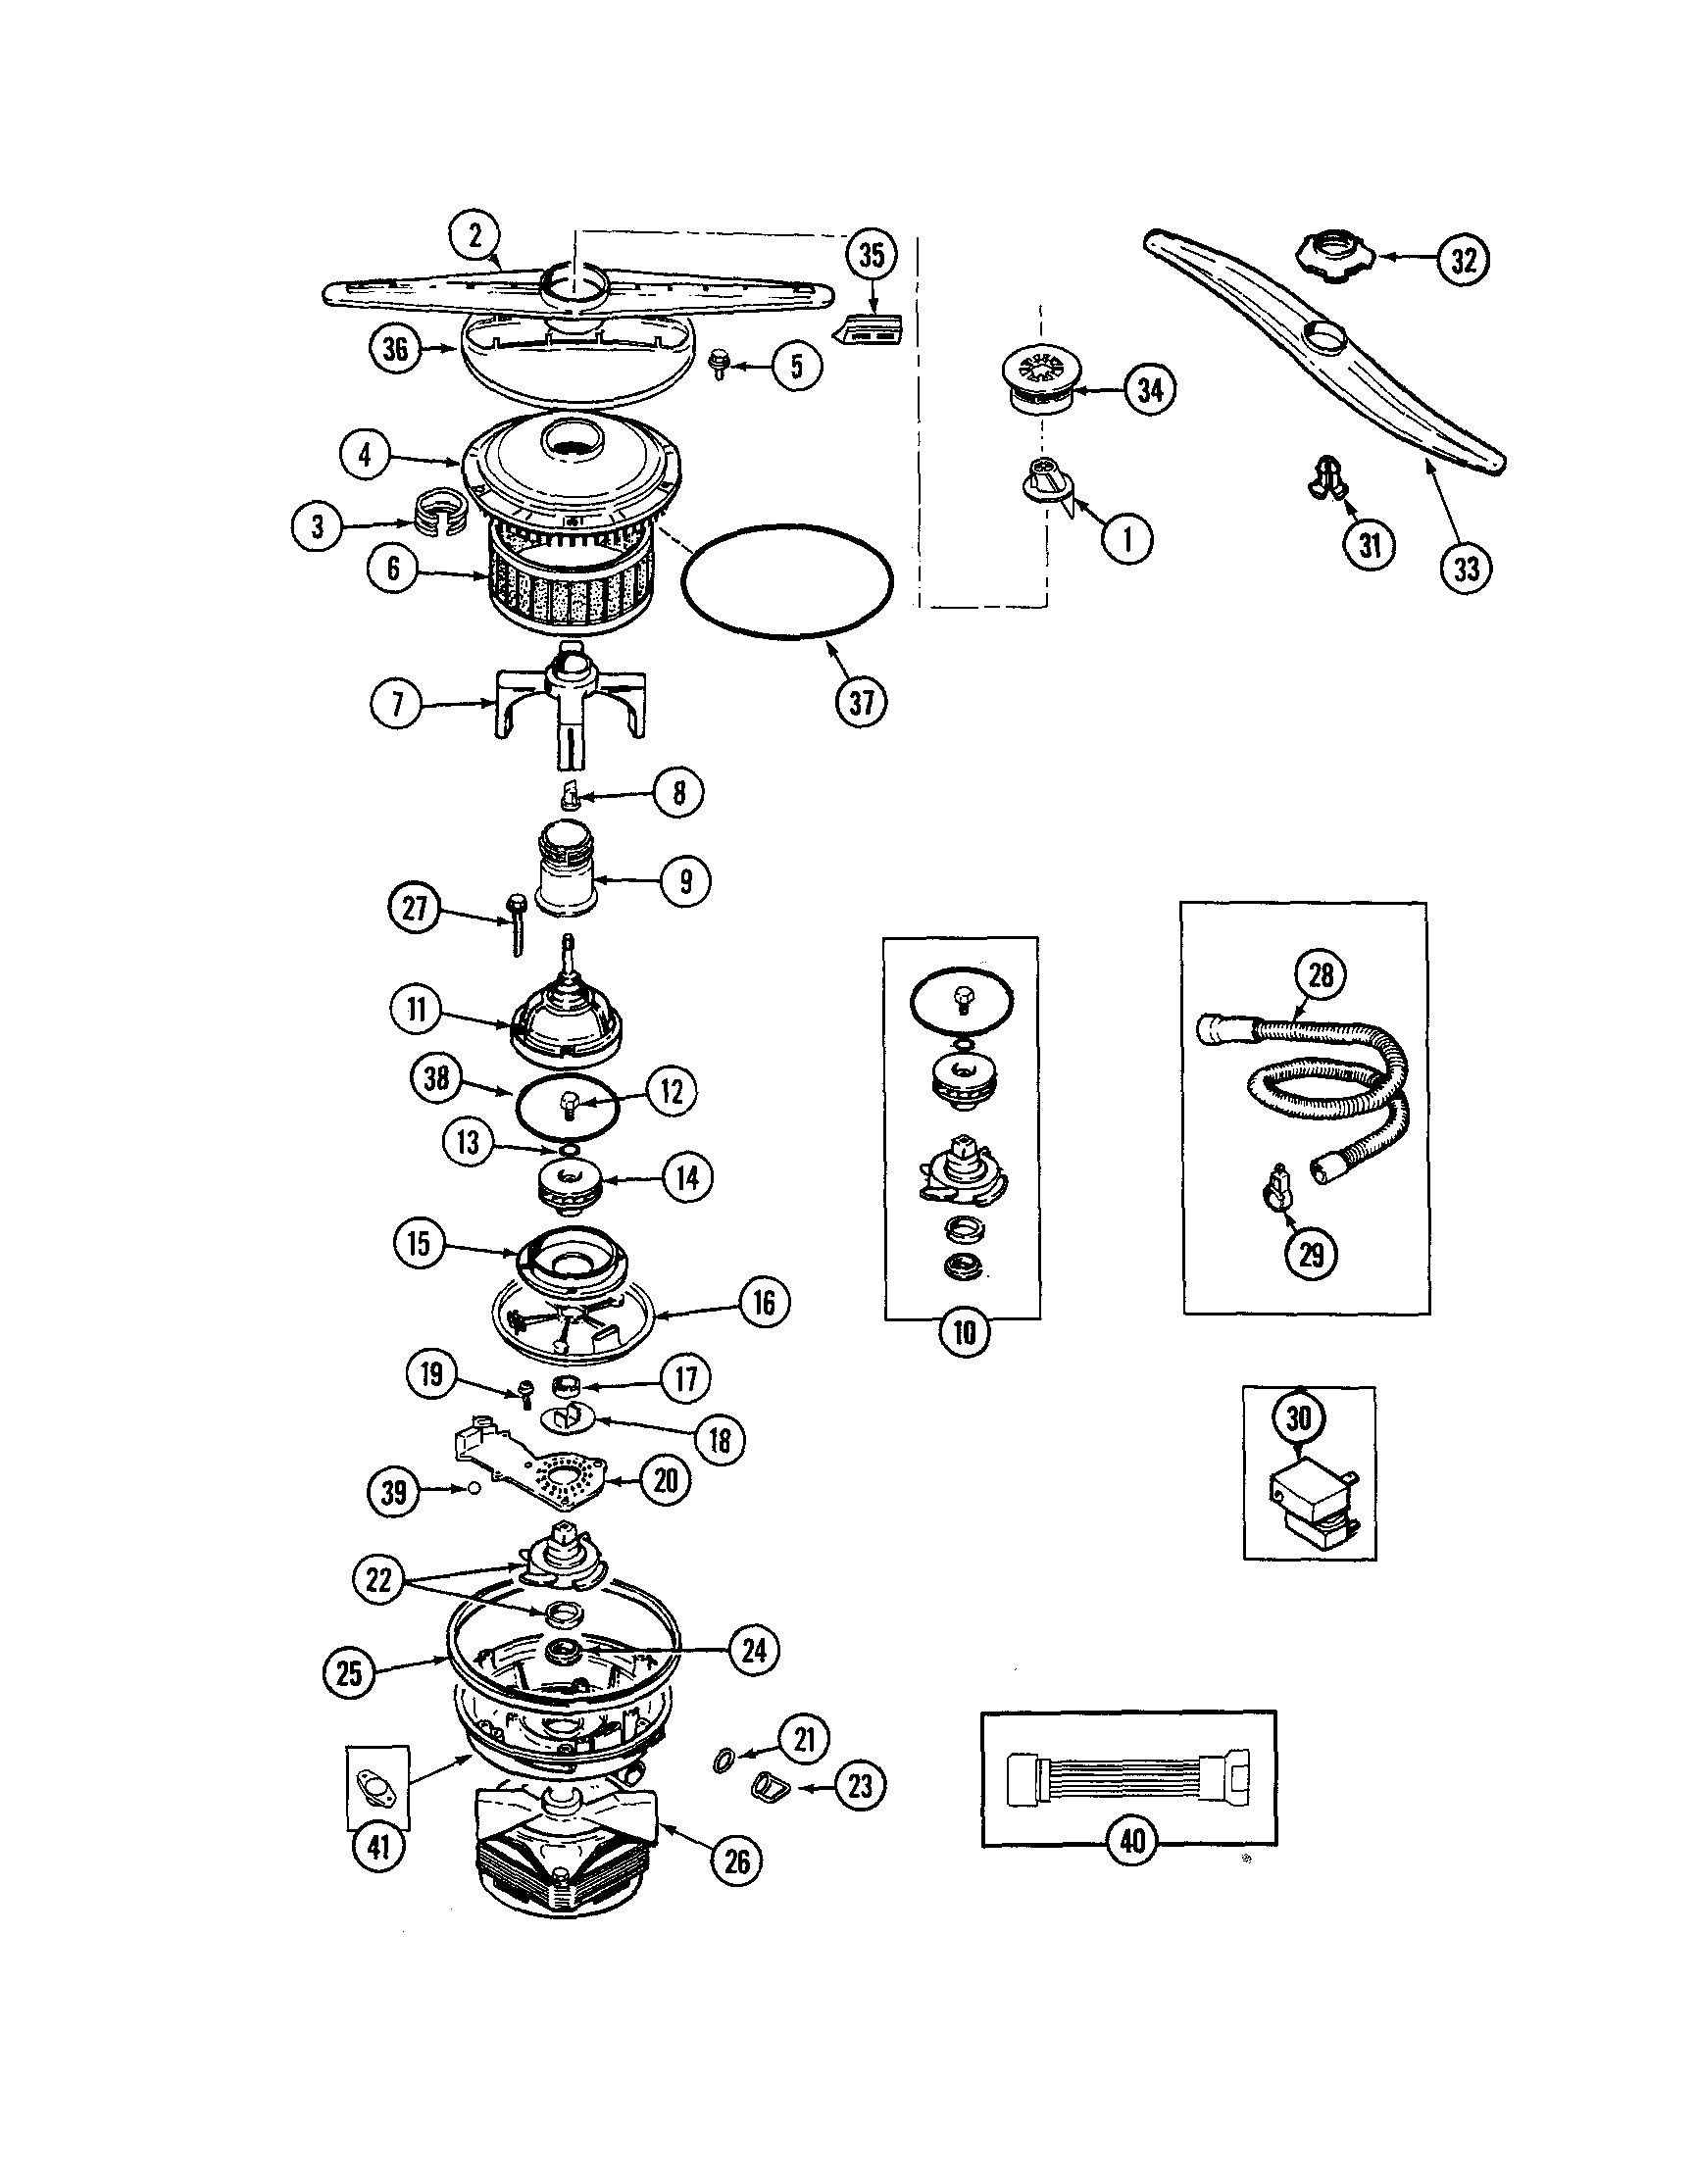 Jenn Air Dishwasher Wiring Diagram Jenn Air Clock Wiring